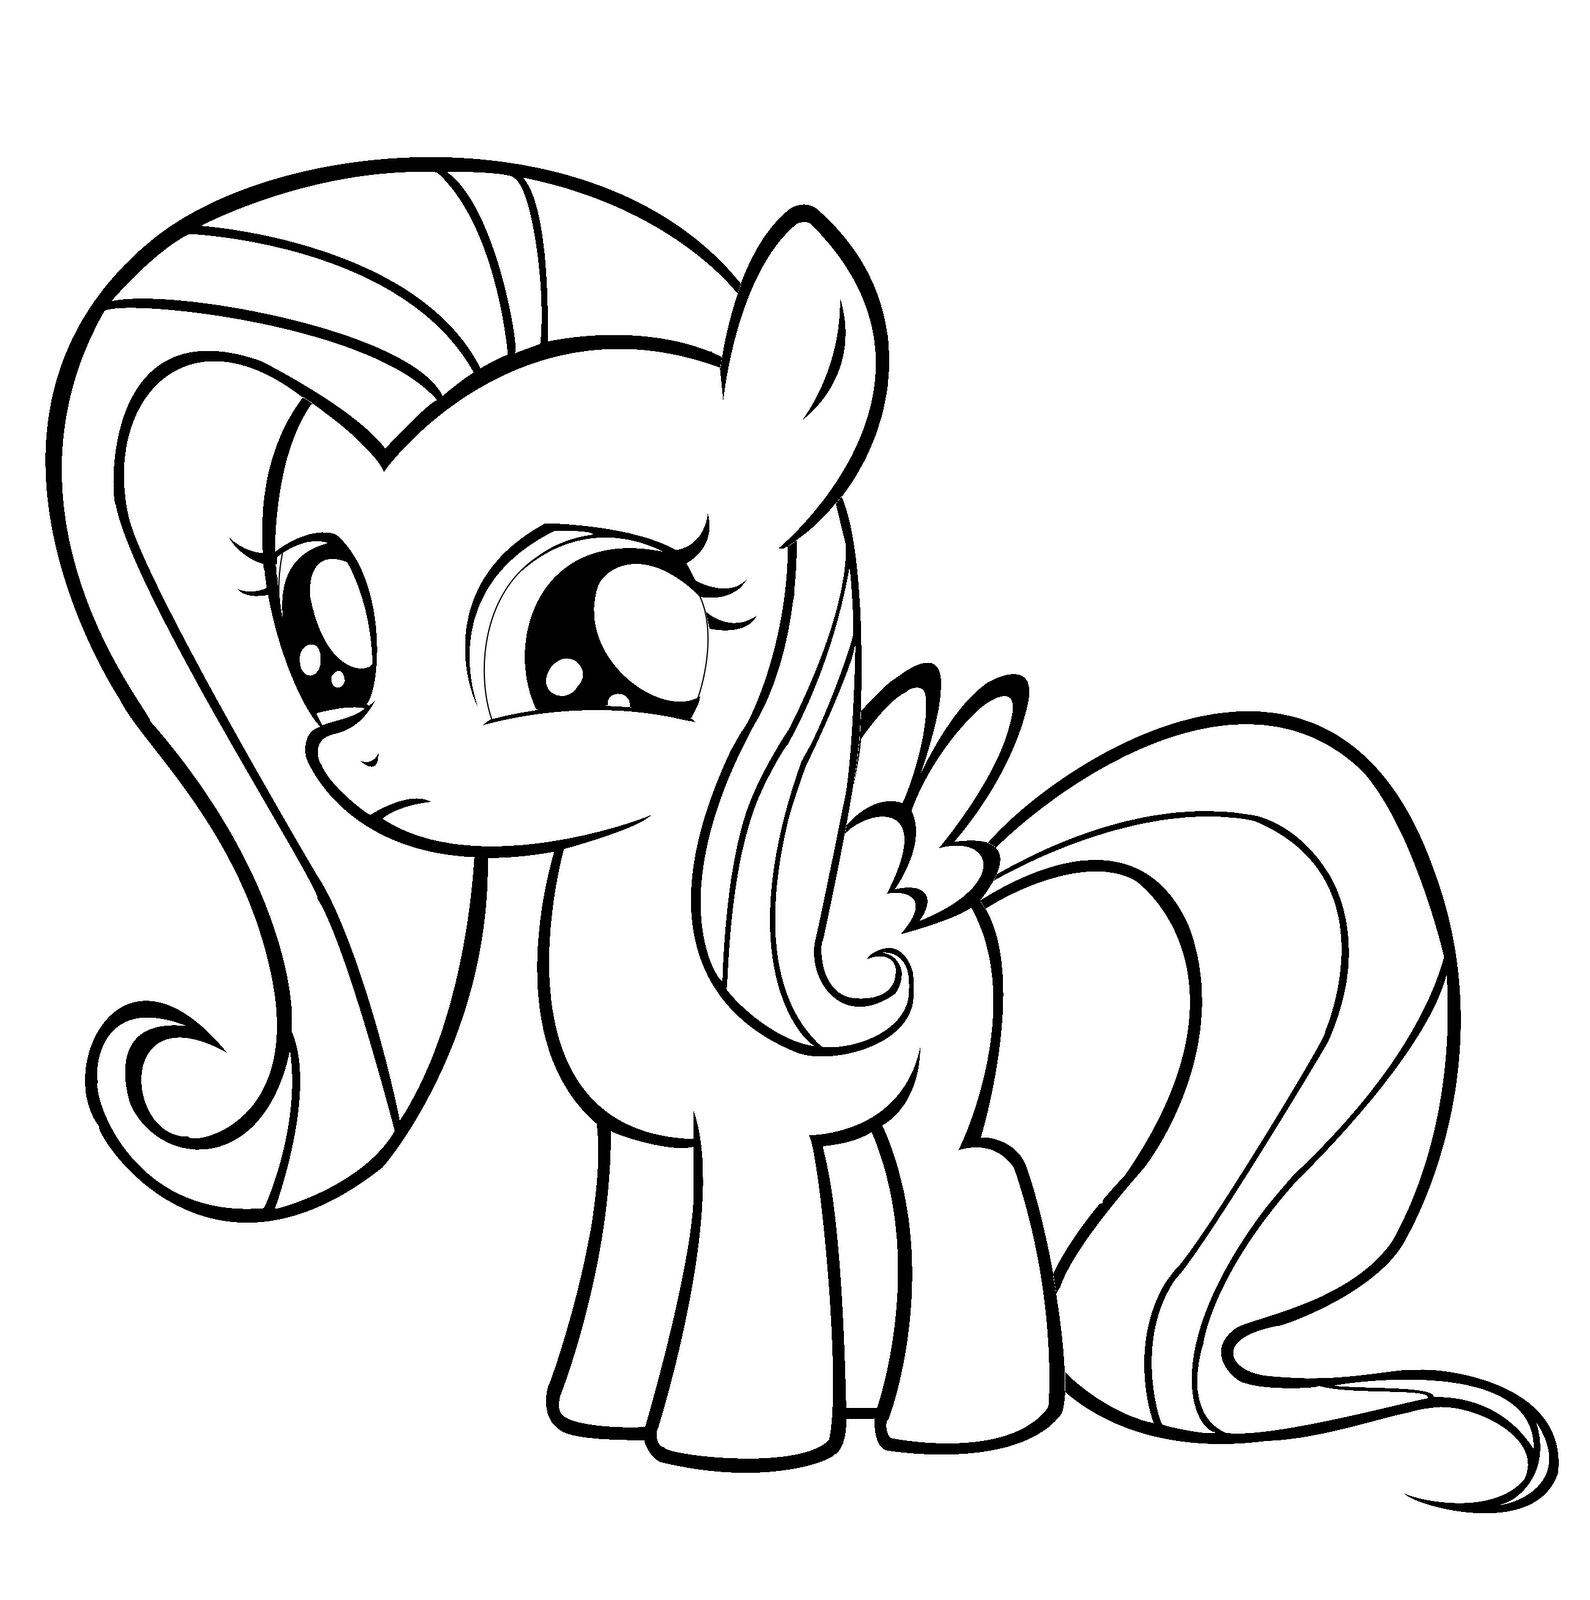 Coloring Fun Young Fluttershy My Little Pony Coloring Animal Coloring Pages Cartoon Coloring Pages